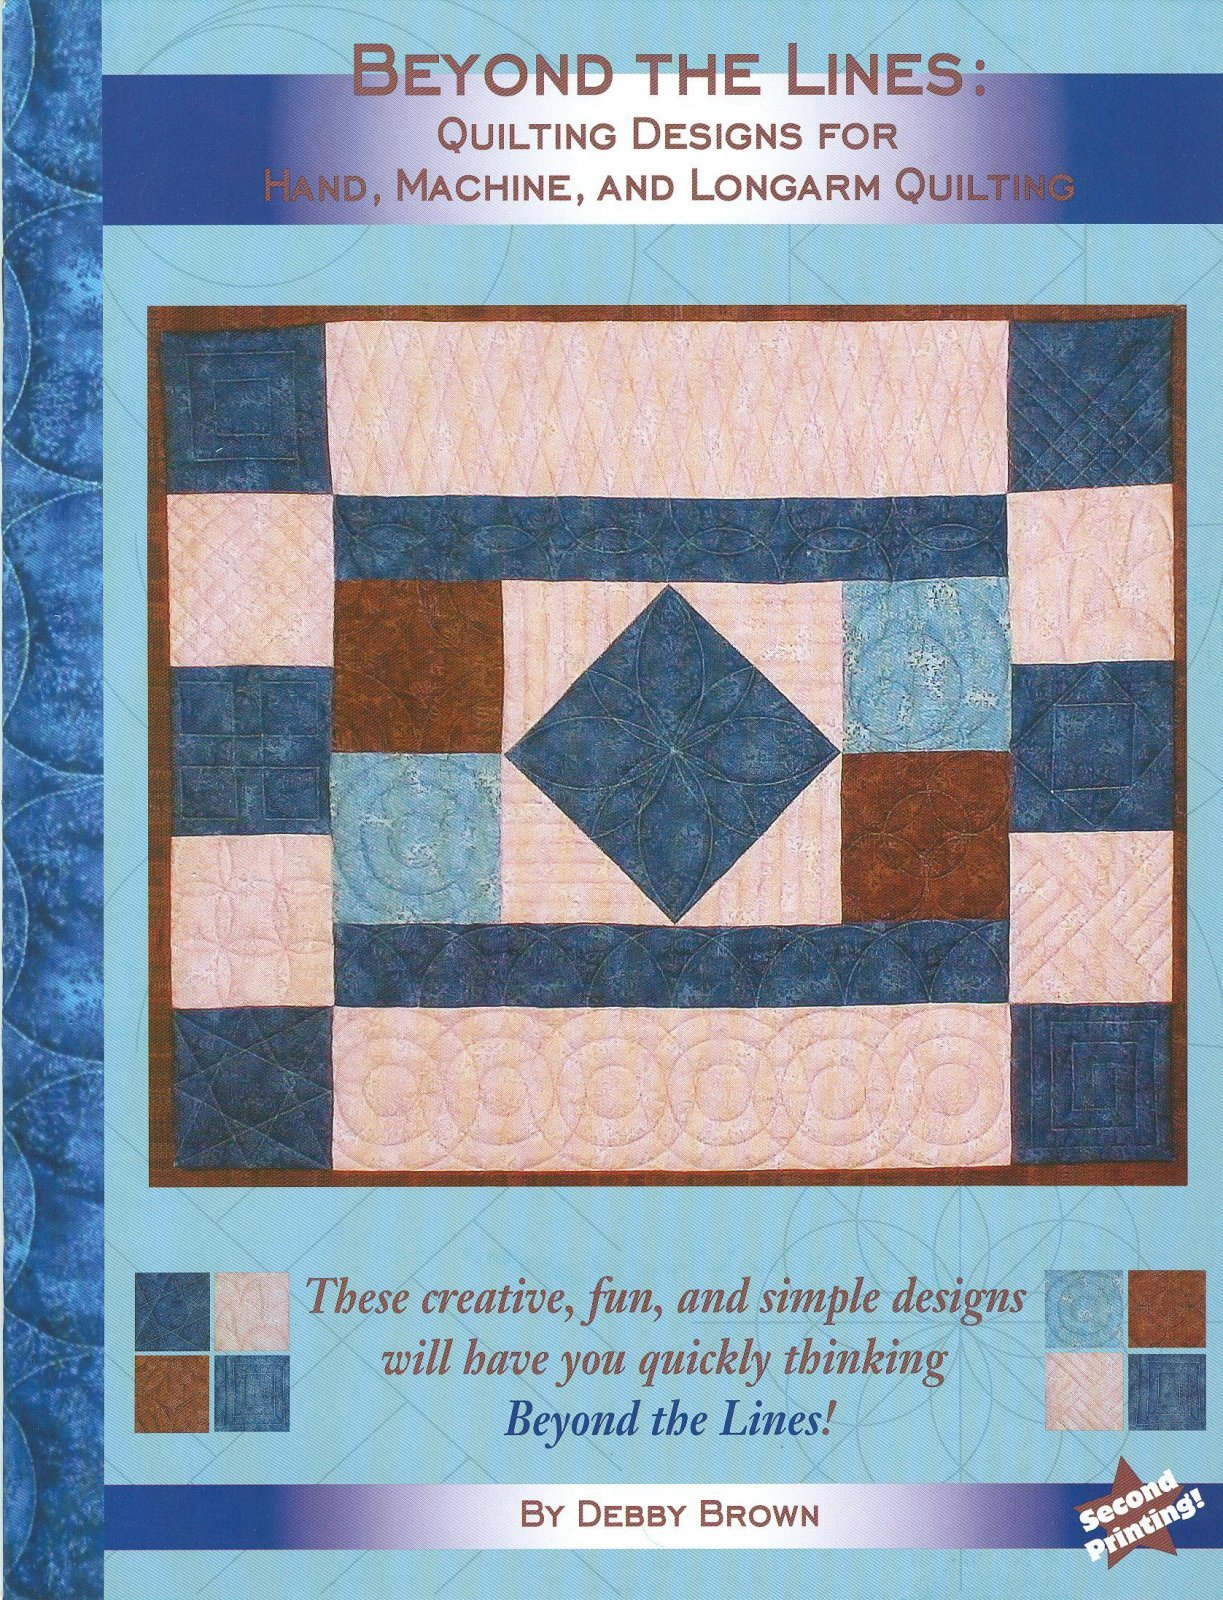 Beyond the Lines Book: Quilting Designs for Hand, Machine & Longarm Quilting